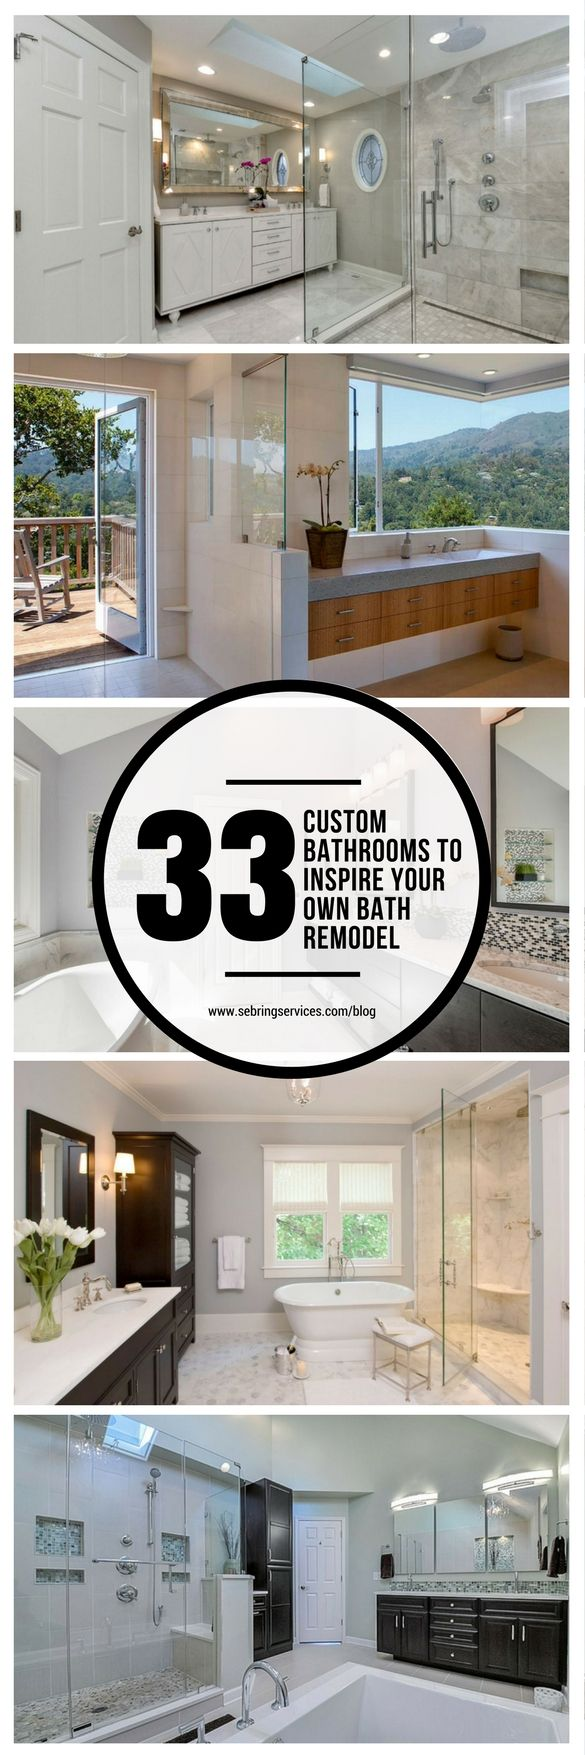 33 Custom Bathrooms To Inspire Your Own Bath Remodel